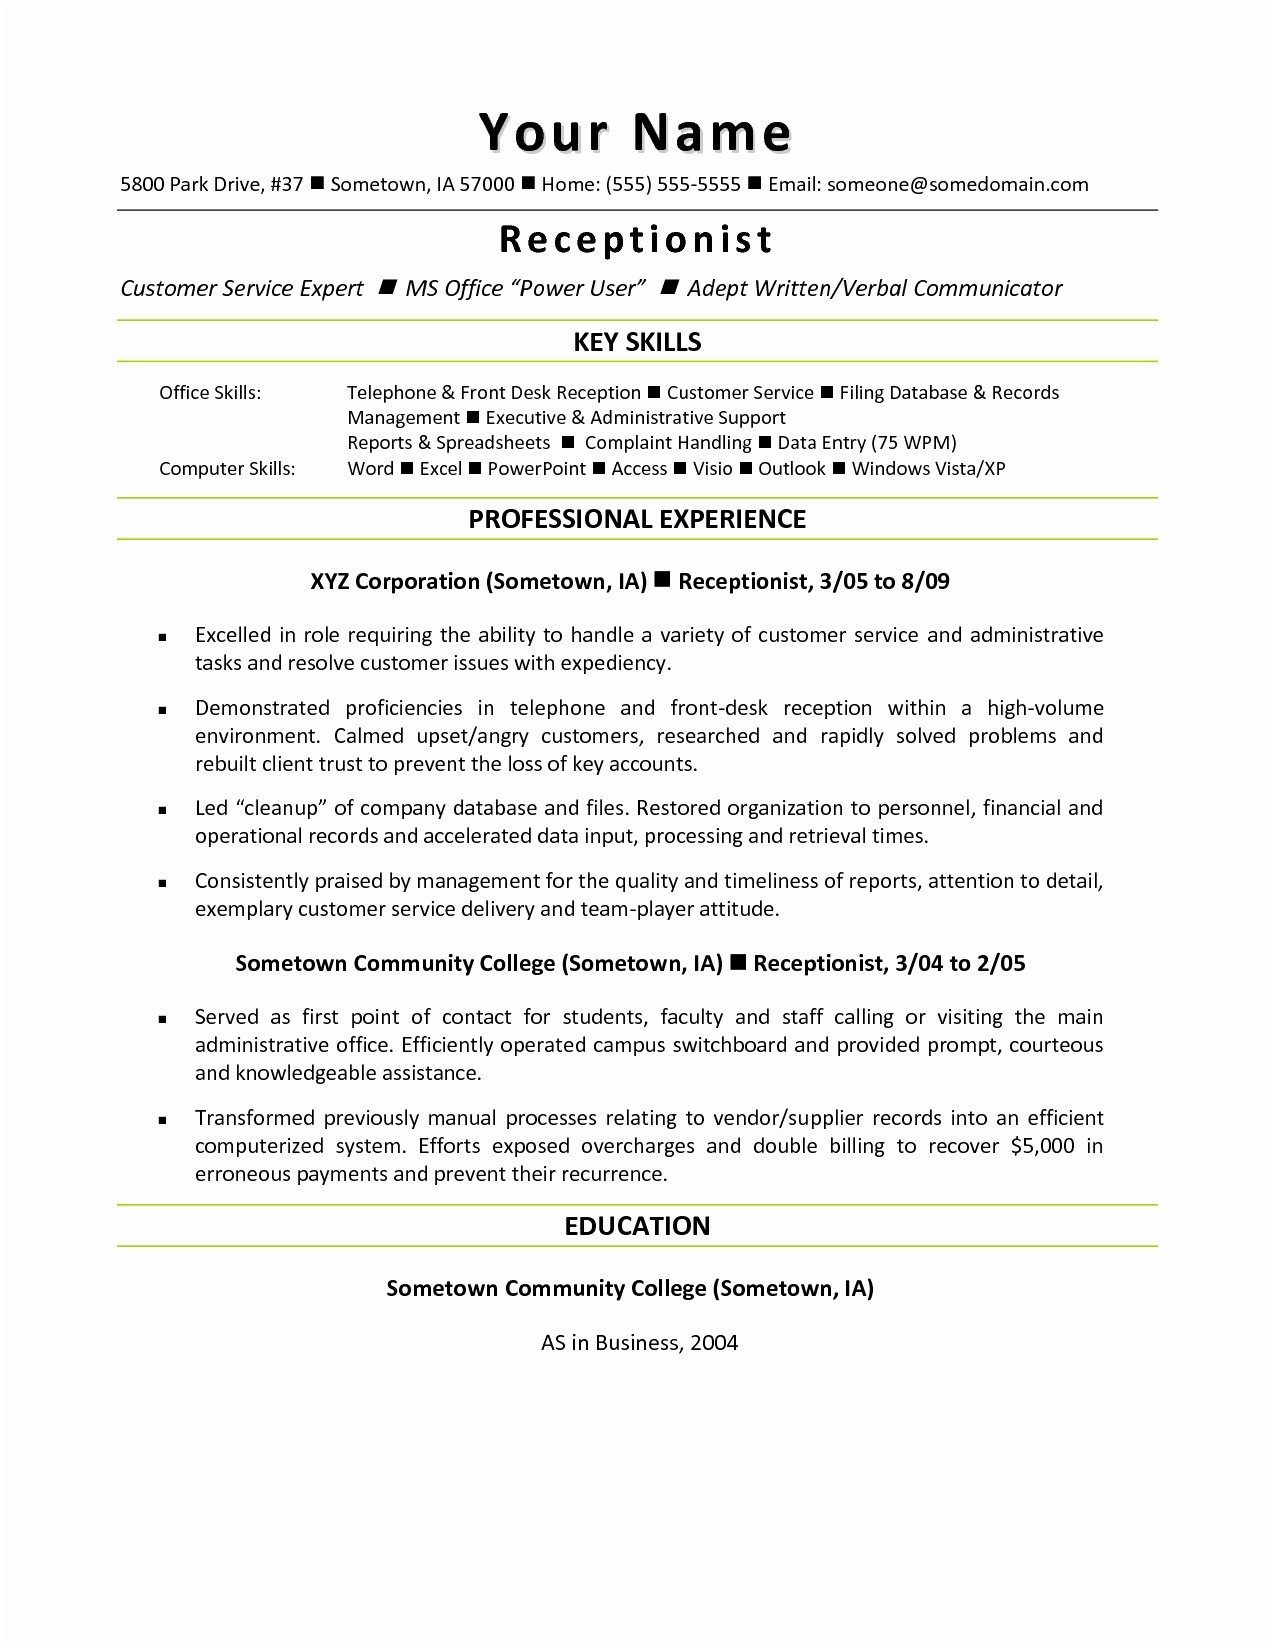 free cover letter template microsoft word Collection-Resume Microsoft Word Fresh Resume Mail Format Sample Fresh Beautiful Od Consultant Cover Letter Information 2-i